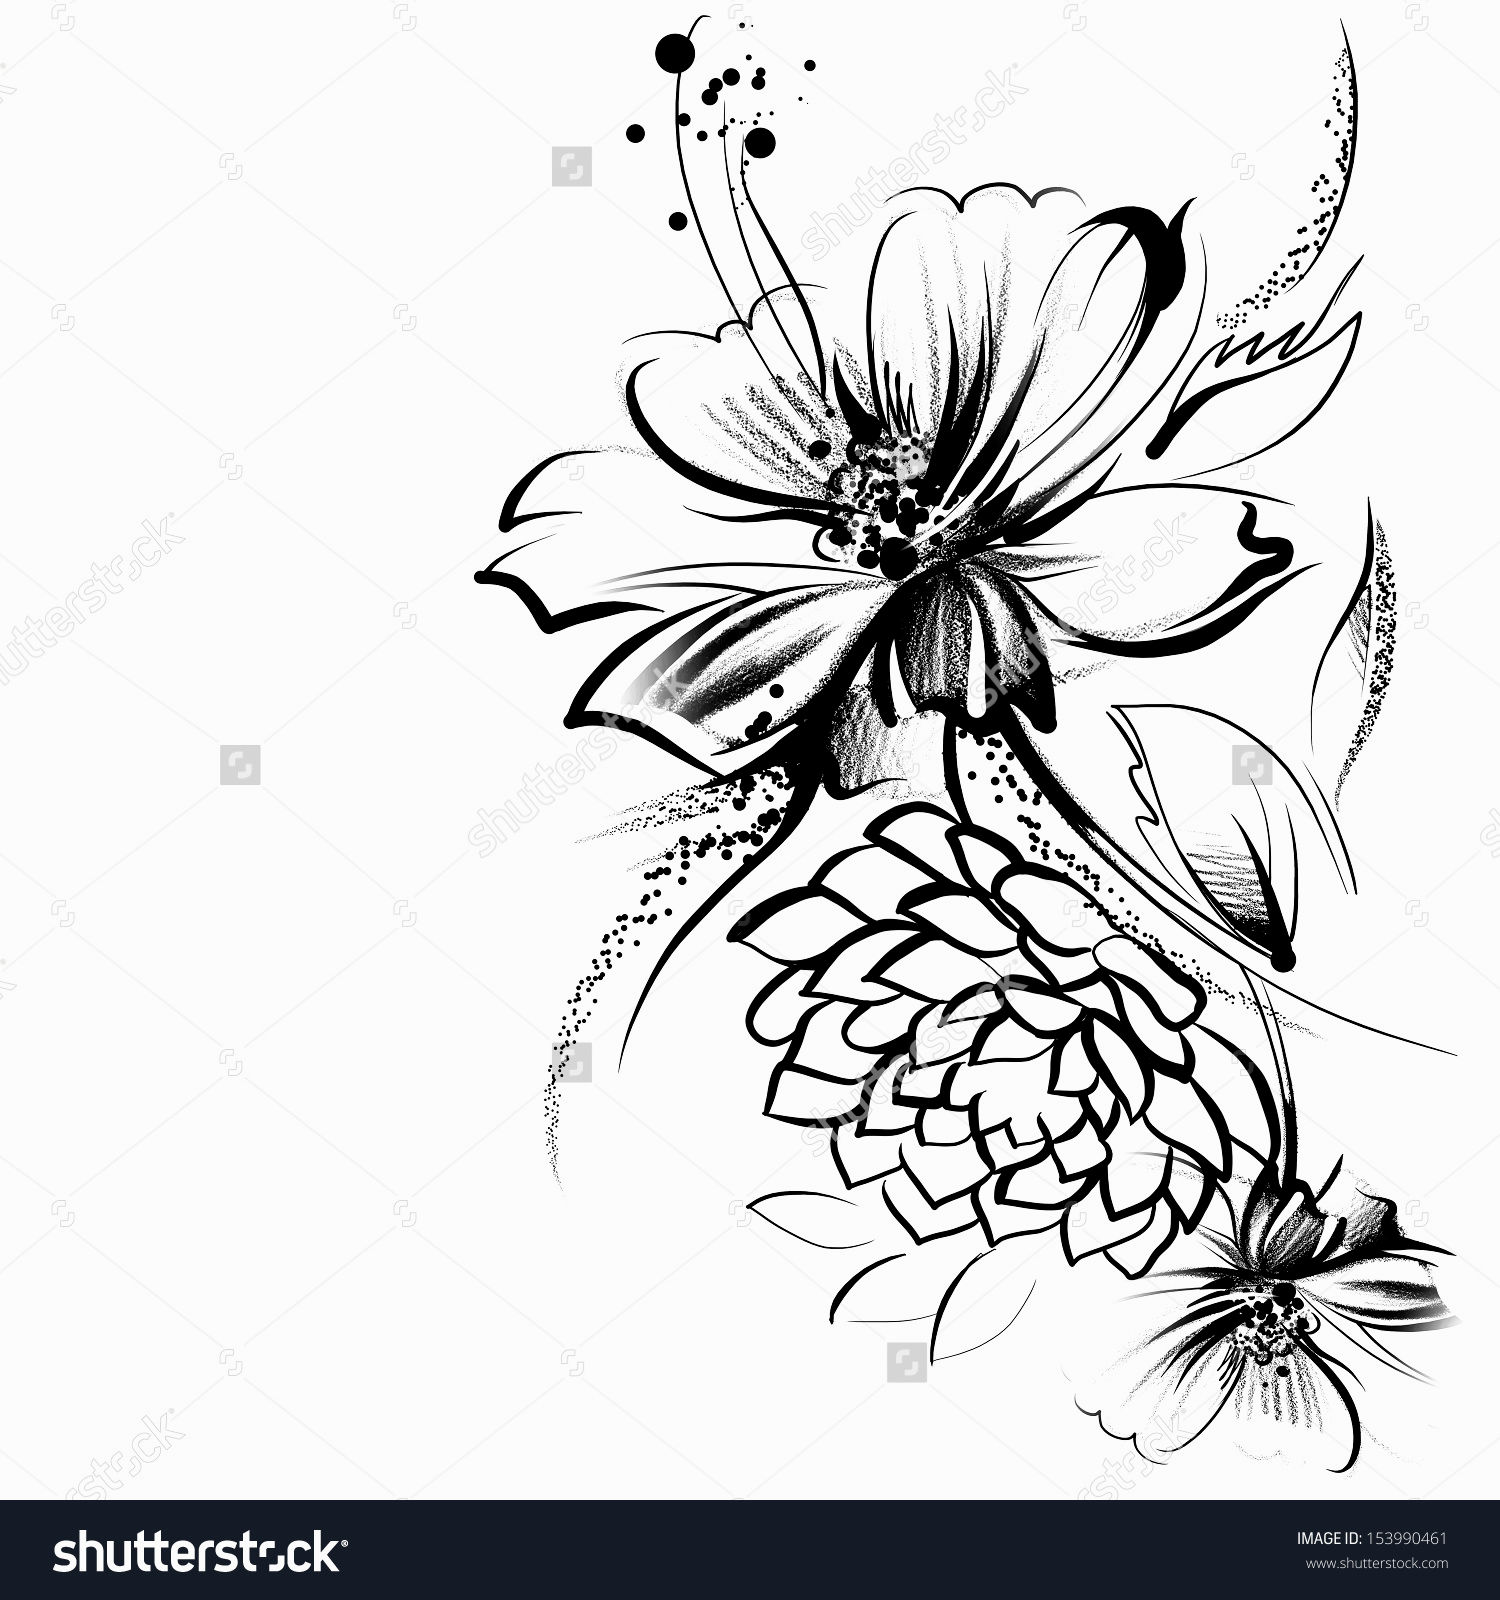 1500x1600 Drawings Of Flowers Flower Charms